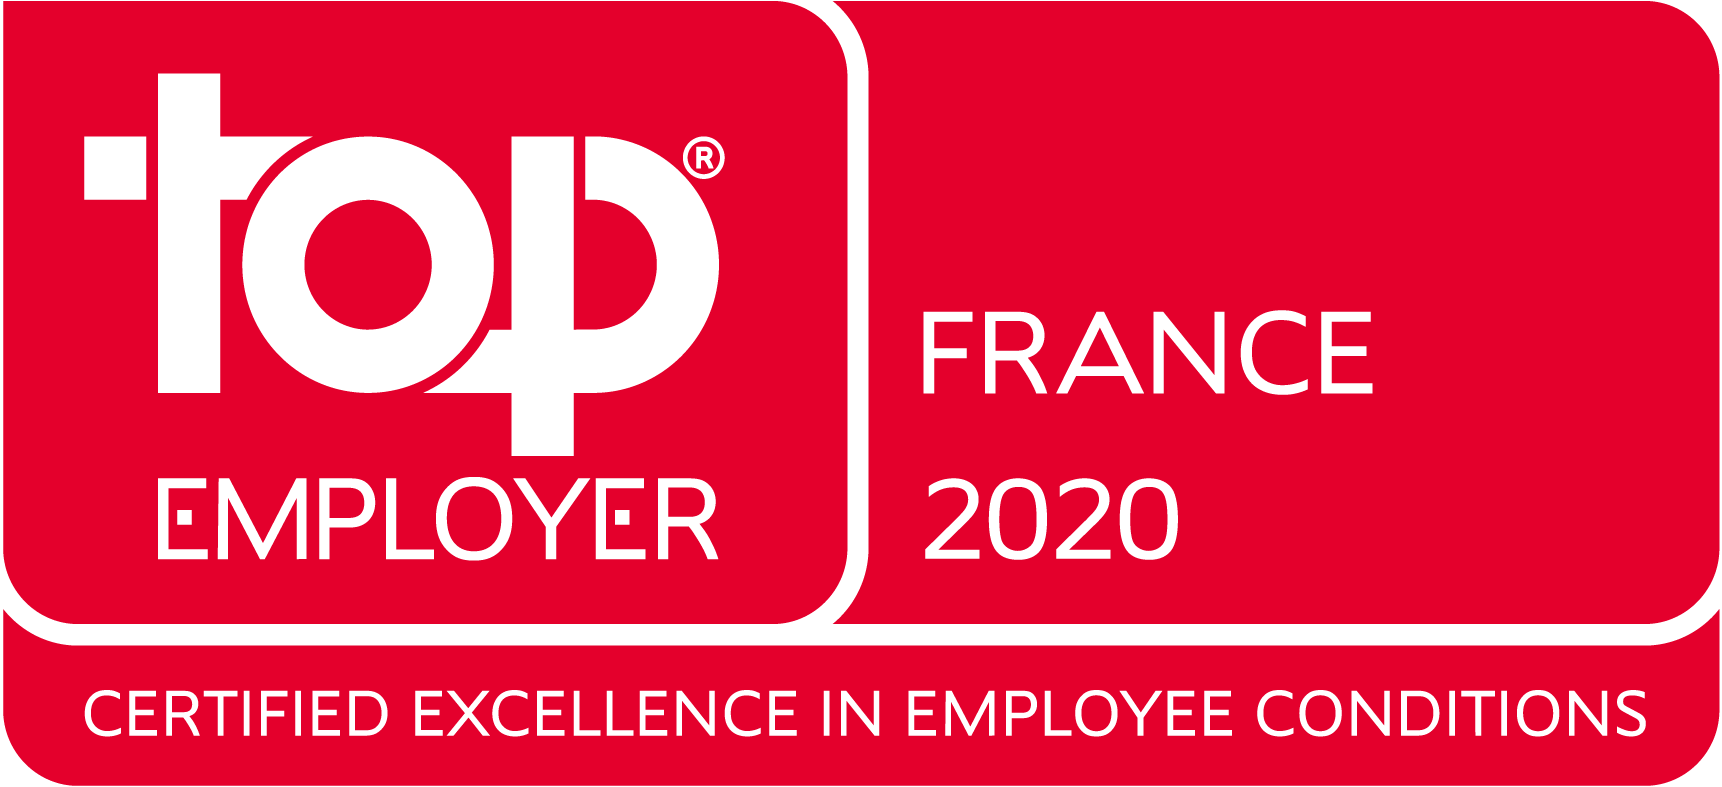 Top_Employer_France_2020